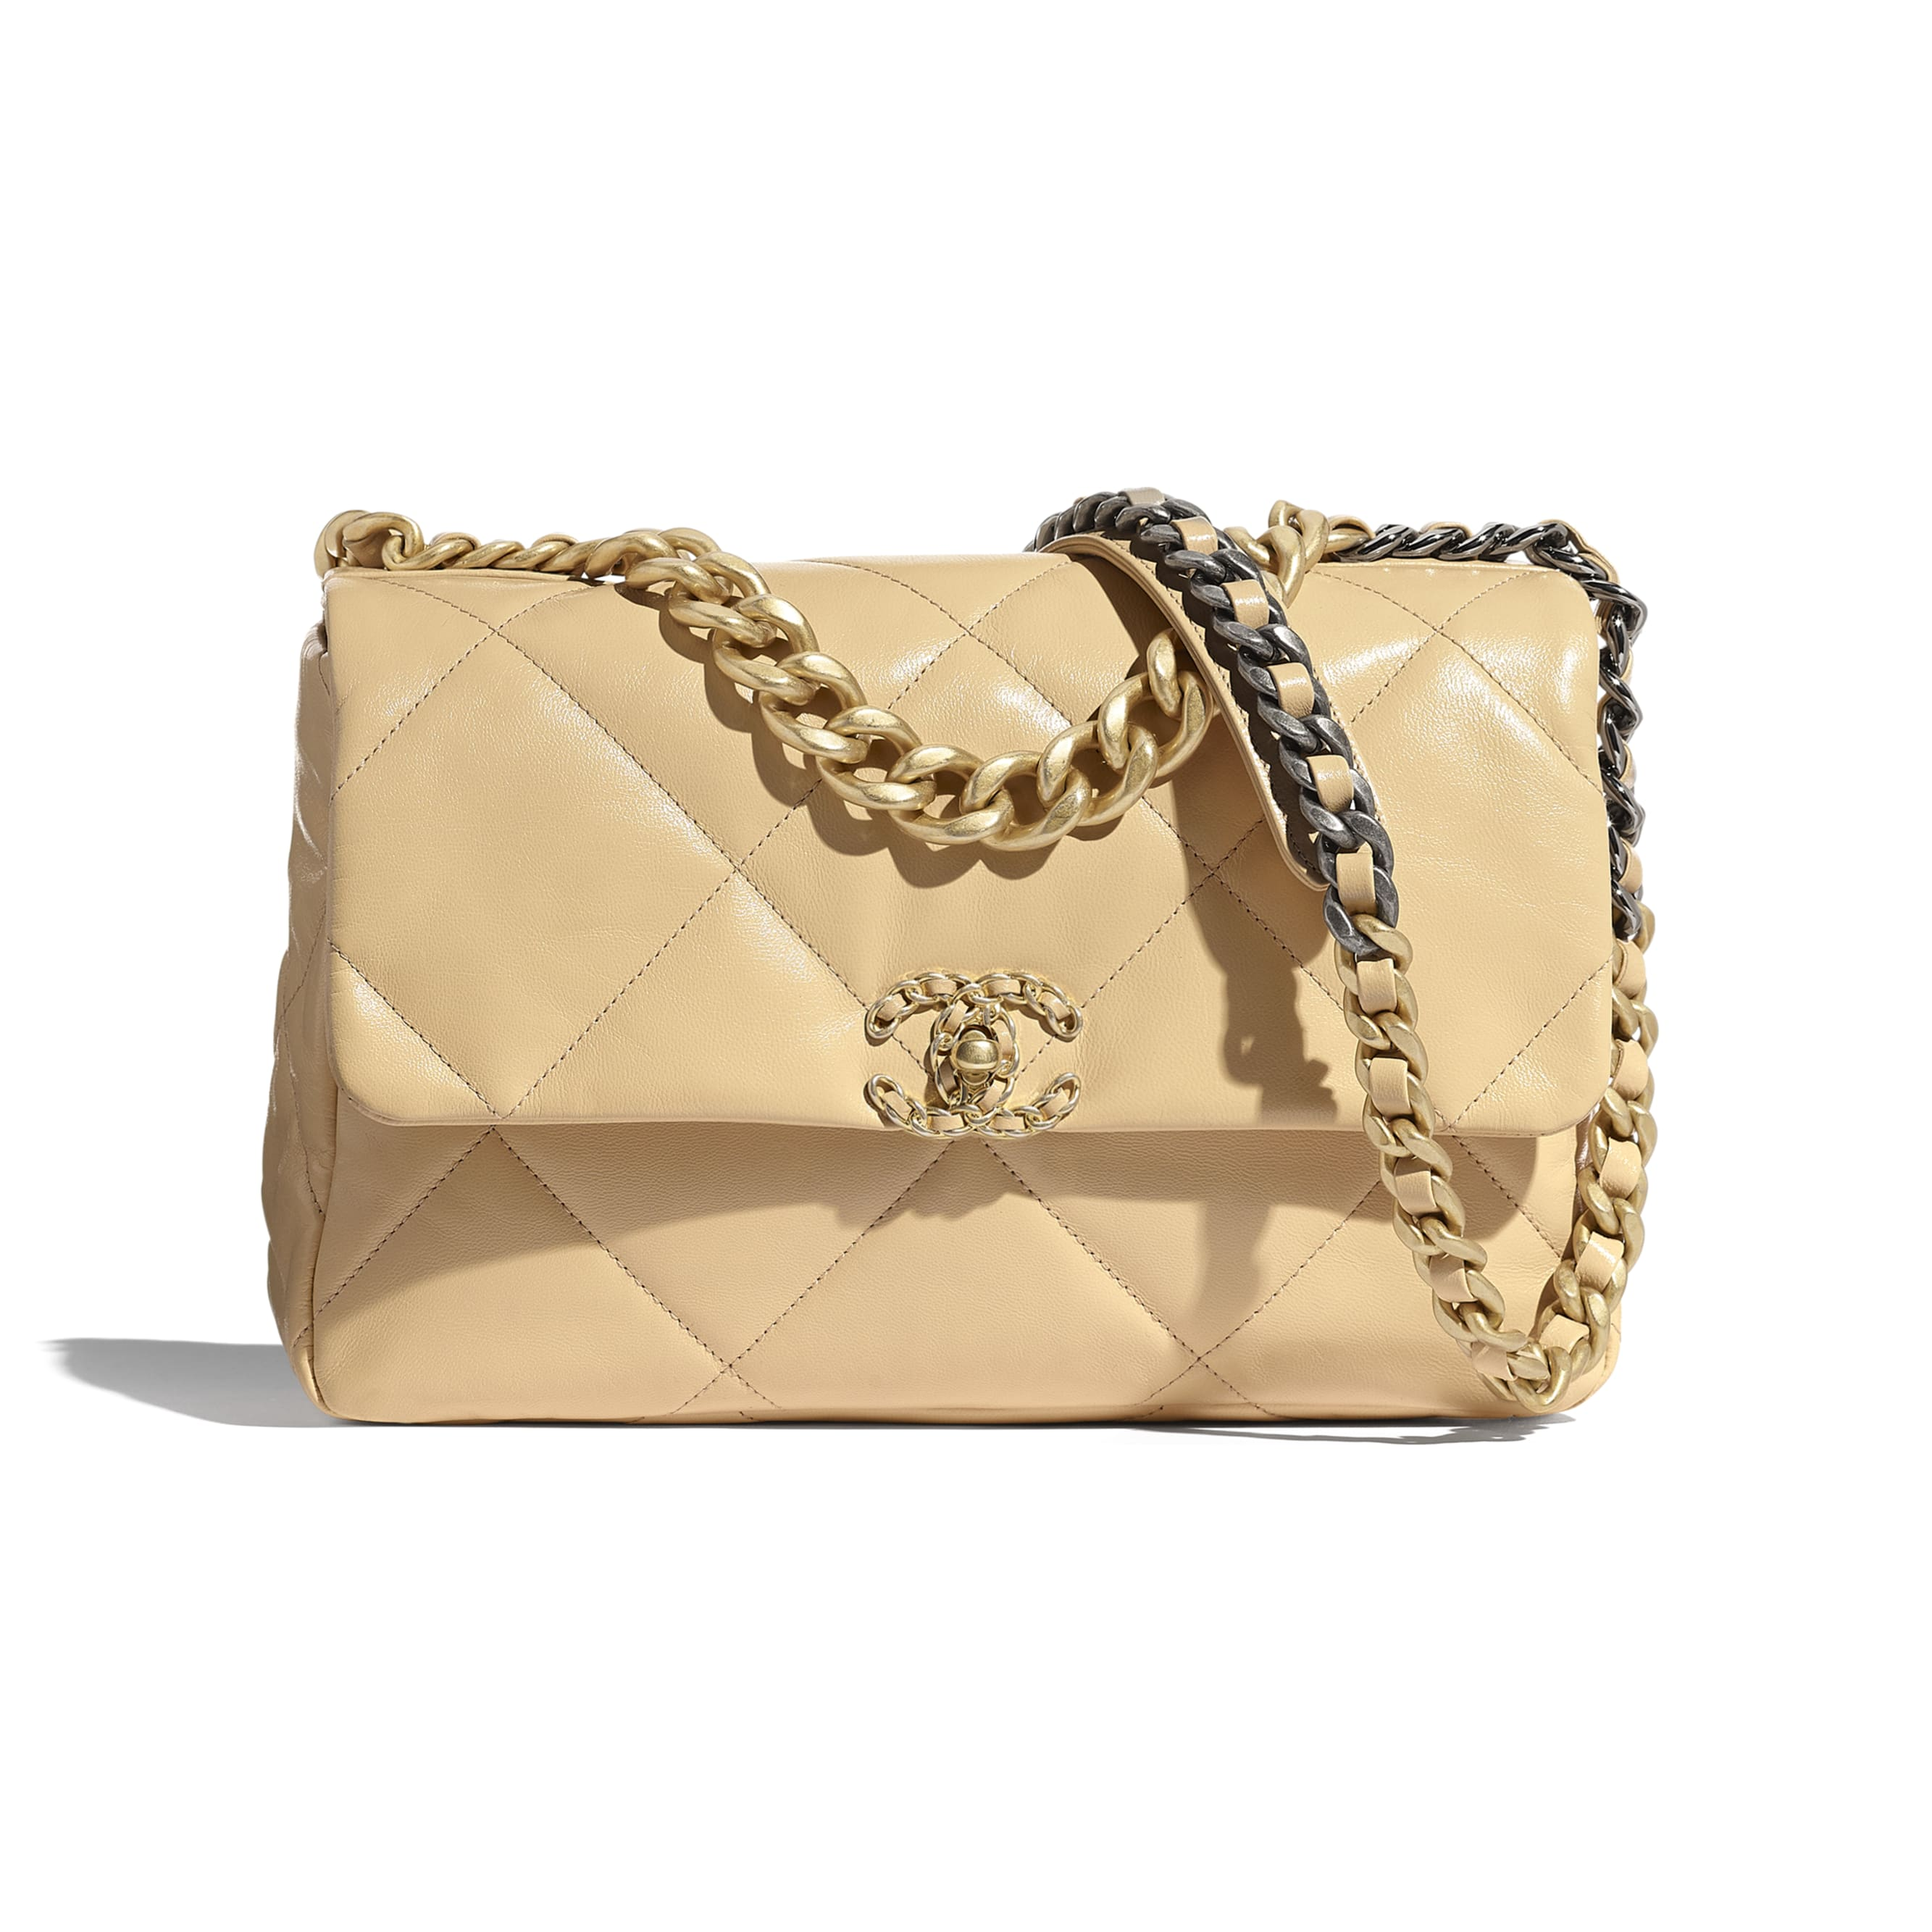 CHANEL 19 Large Flap Bag - Beige - Shiny Goatskin, Gold-Tone, Silver-Tone & Ruthenium-Finish Metal - CHANEL - Default view - see standard sized version